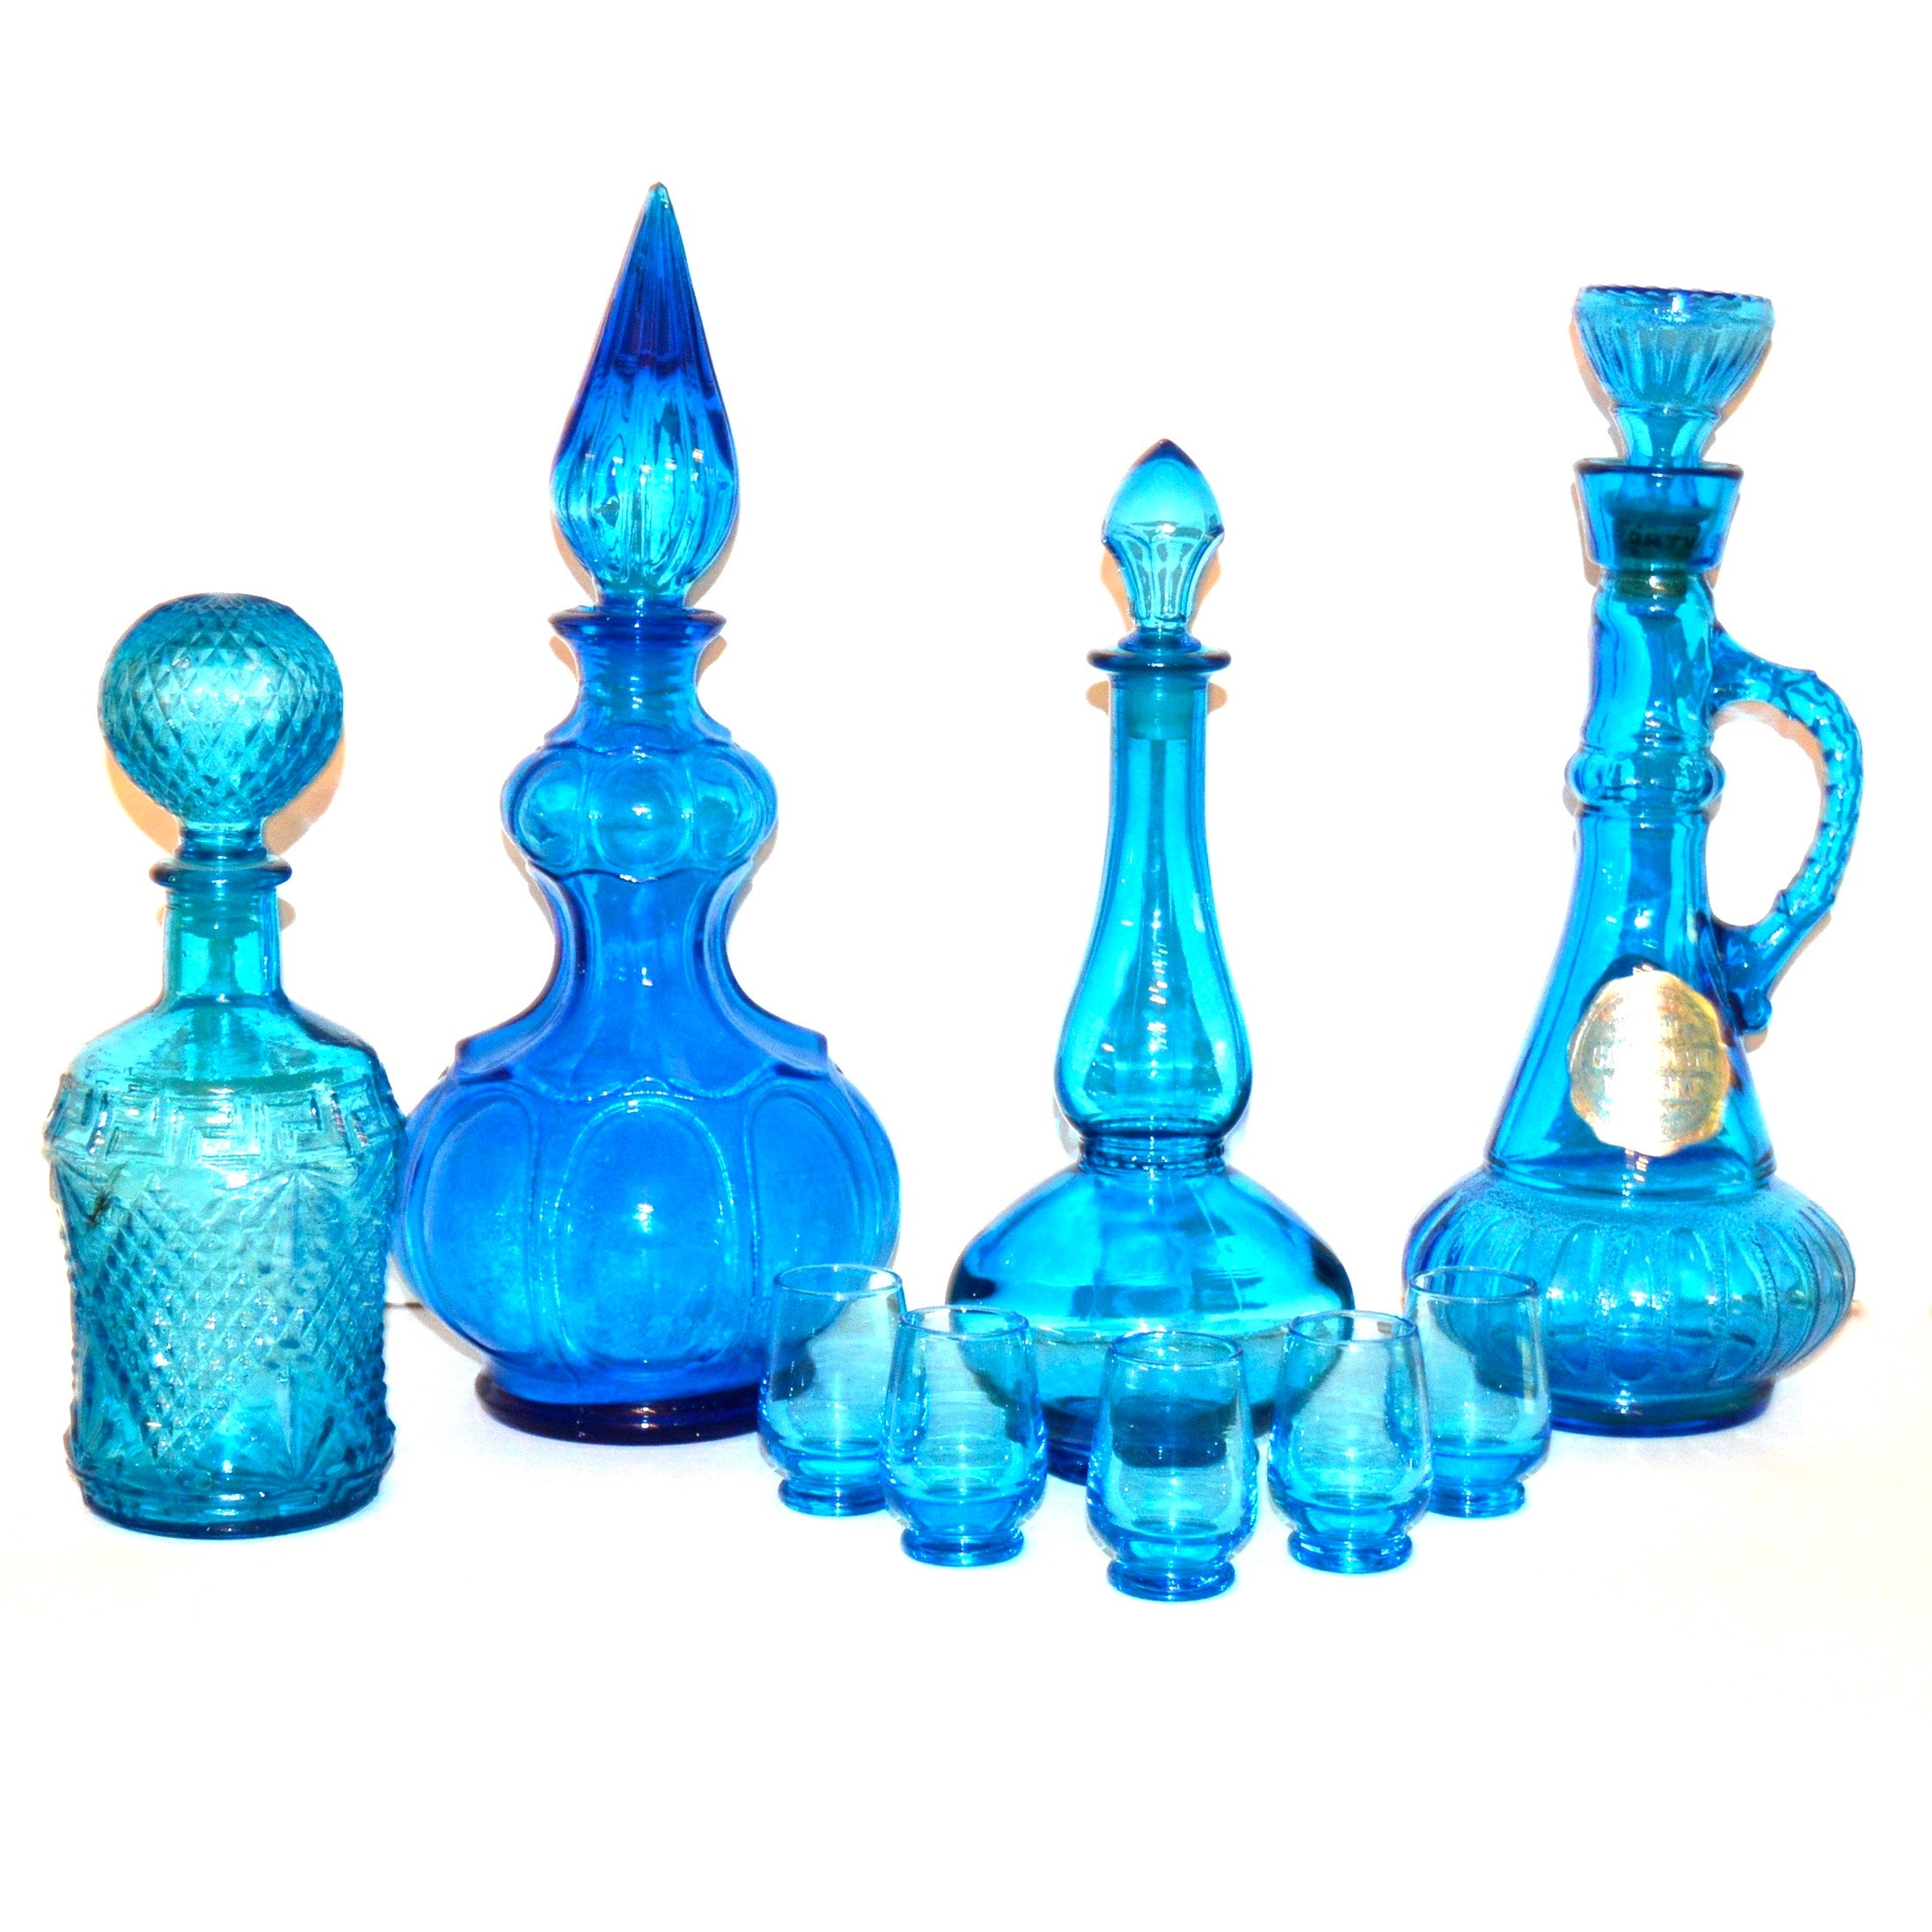 Vintage Blue Glass Liquor Decanters and Glasses